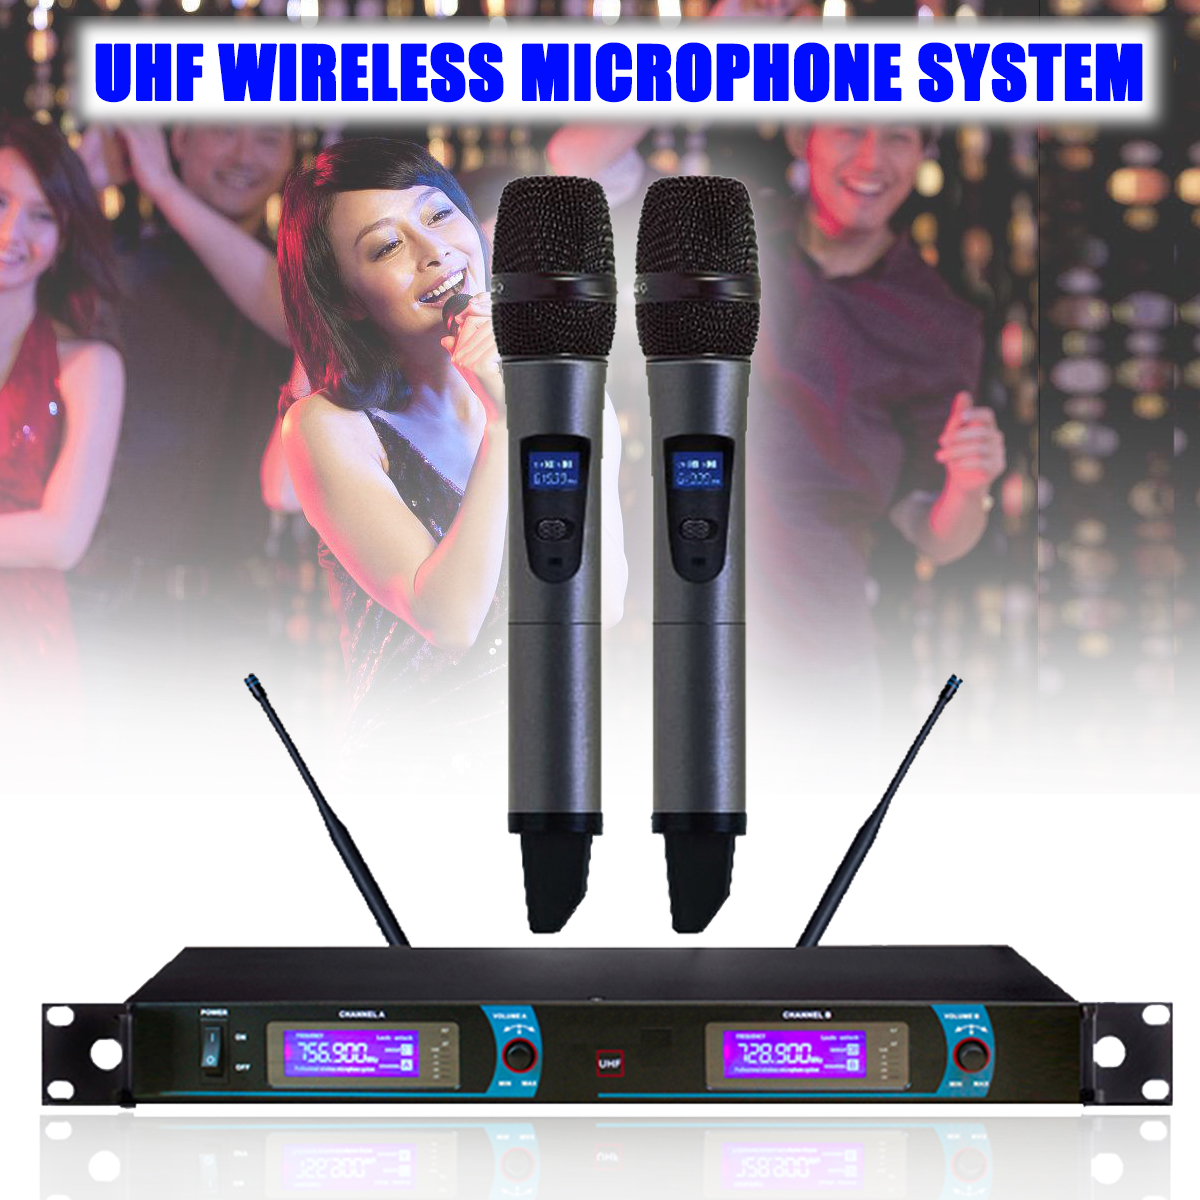 LCD Display UHF Wireless Dual Handheld Microphone Mic System Home KTV Karaoke DJ Wireless Microphone Profesional leory uhf wireless microphone system 4 channel uhf receiver karaoke microphone system with four mic for diy family ktv singing